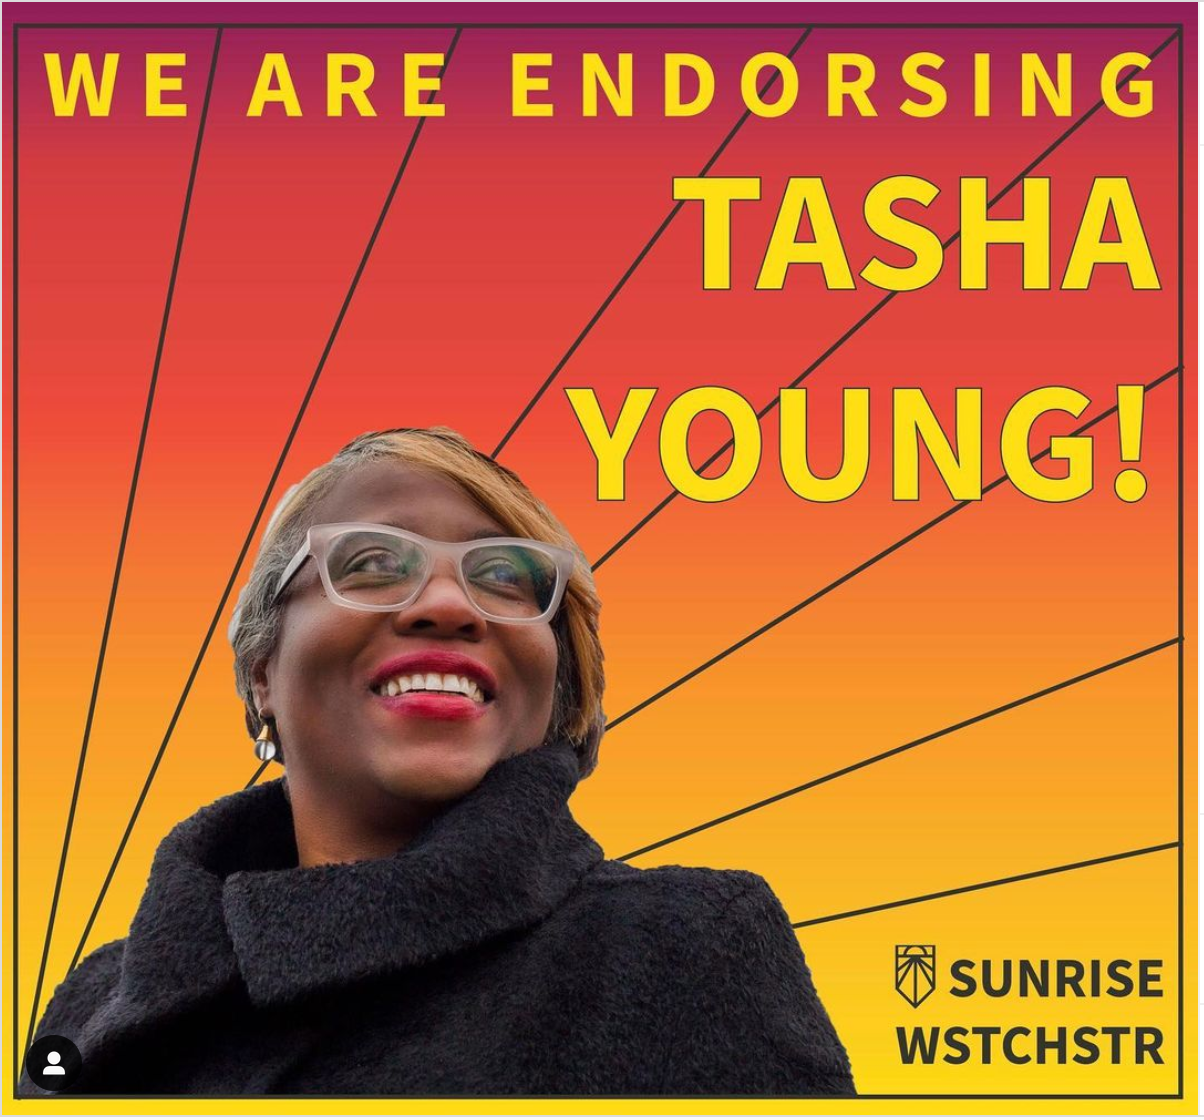 The Sunrise Movement Westchester endorsed Tasha D. Young for Greenburgh Town Supervisor